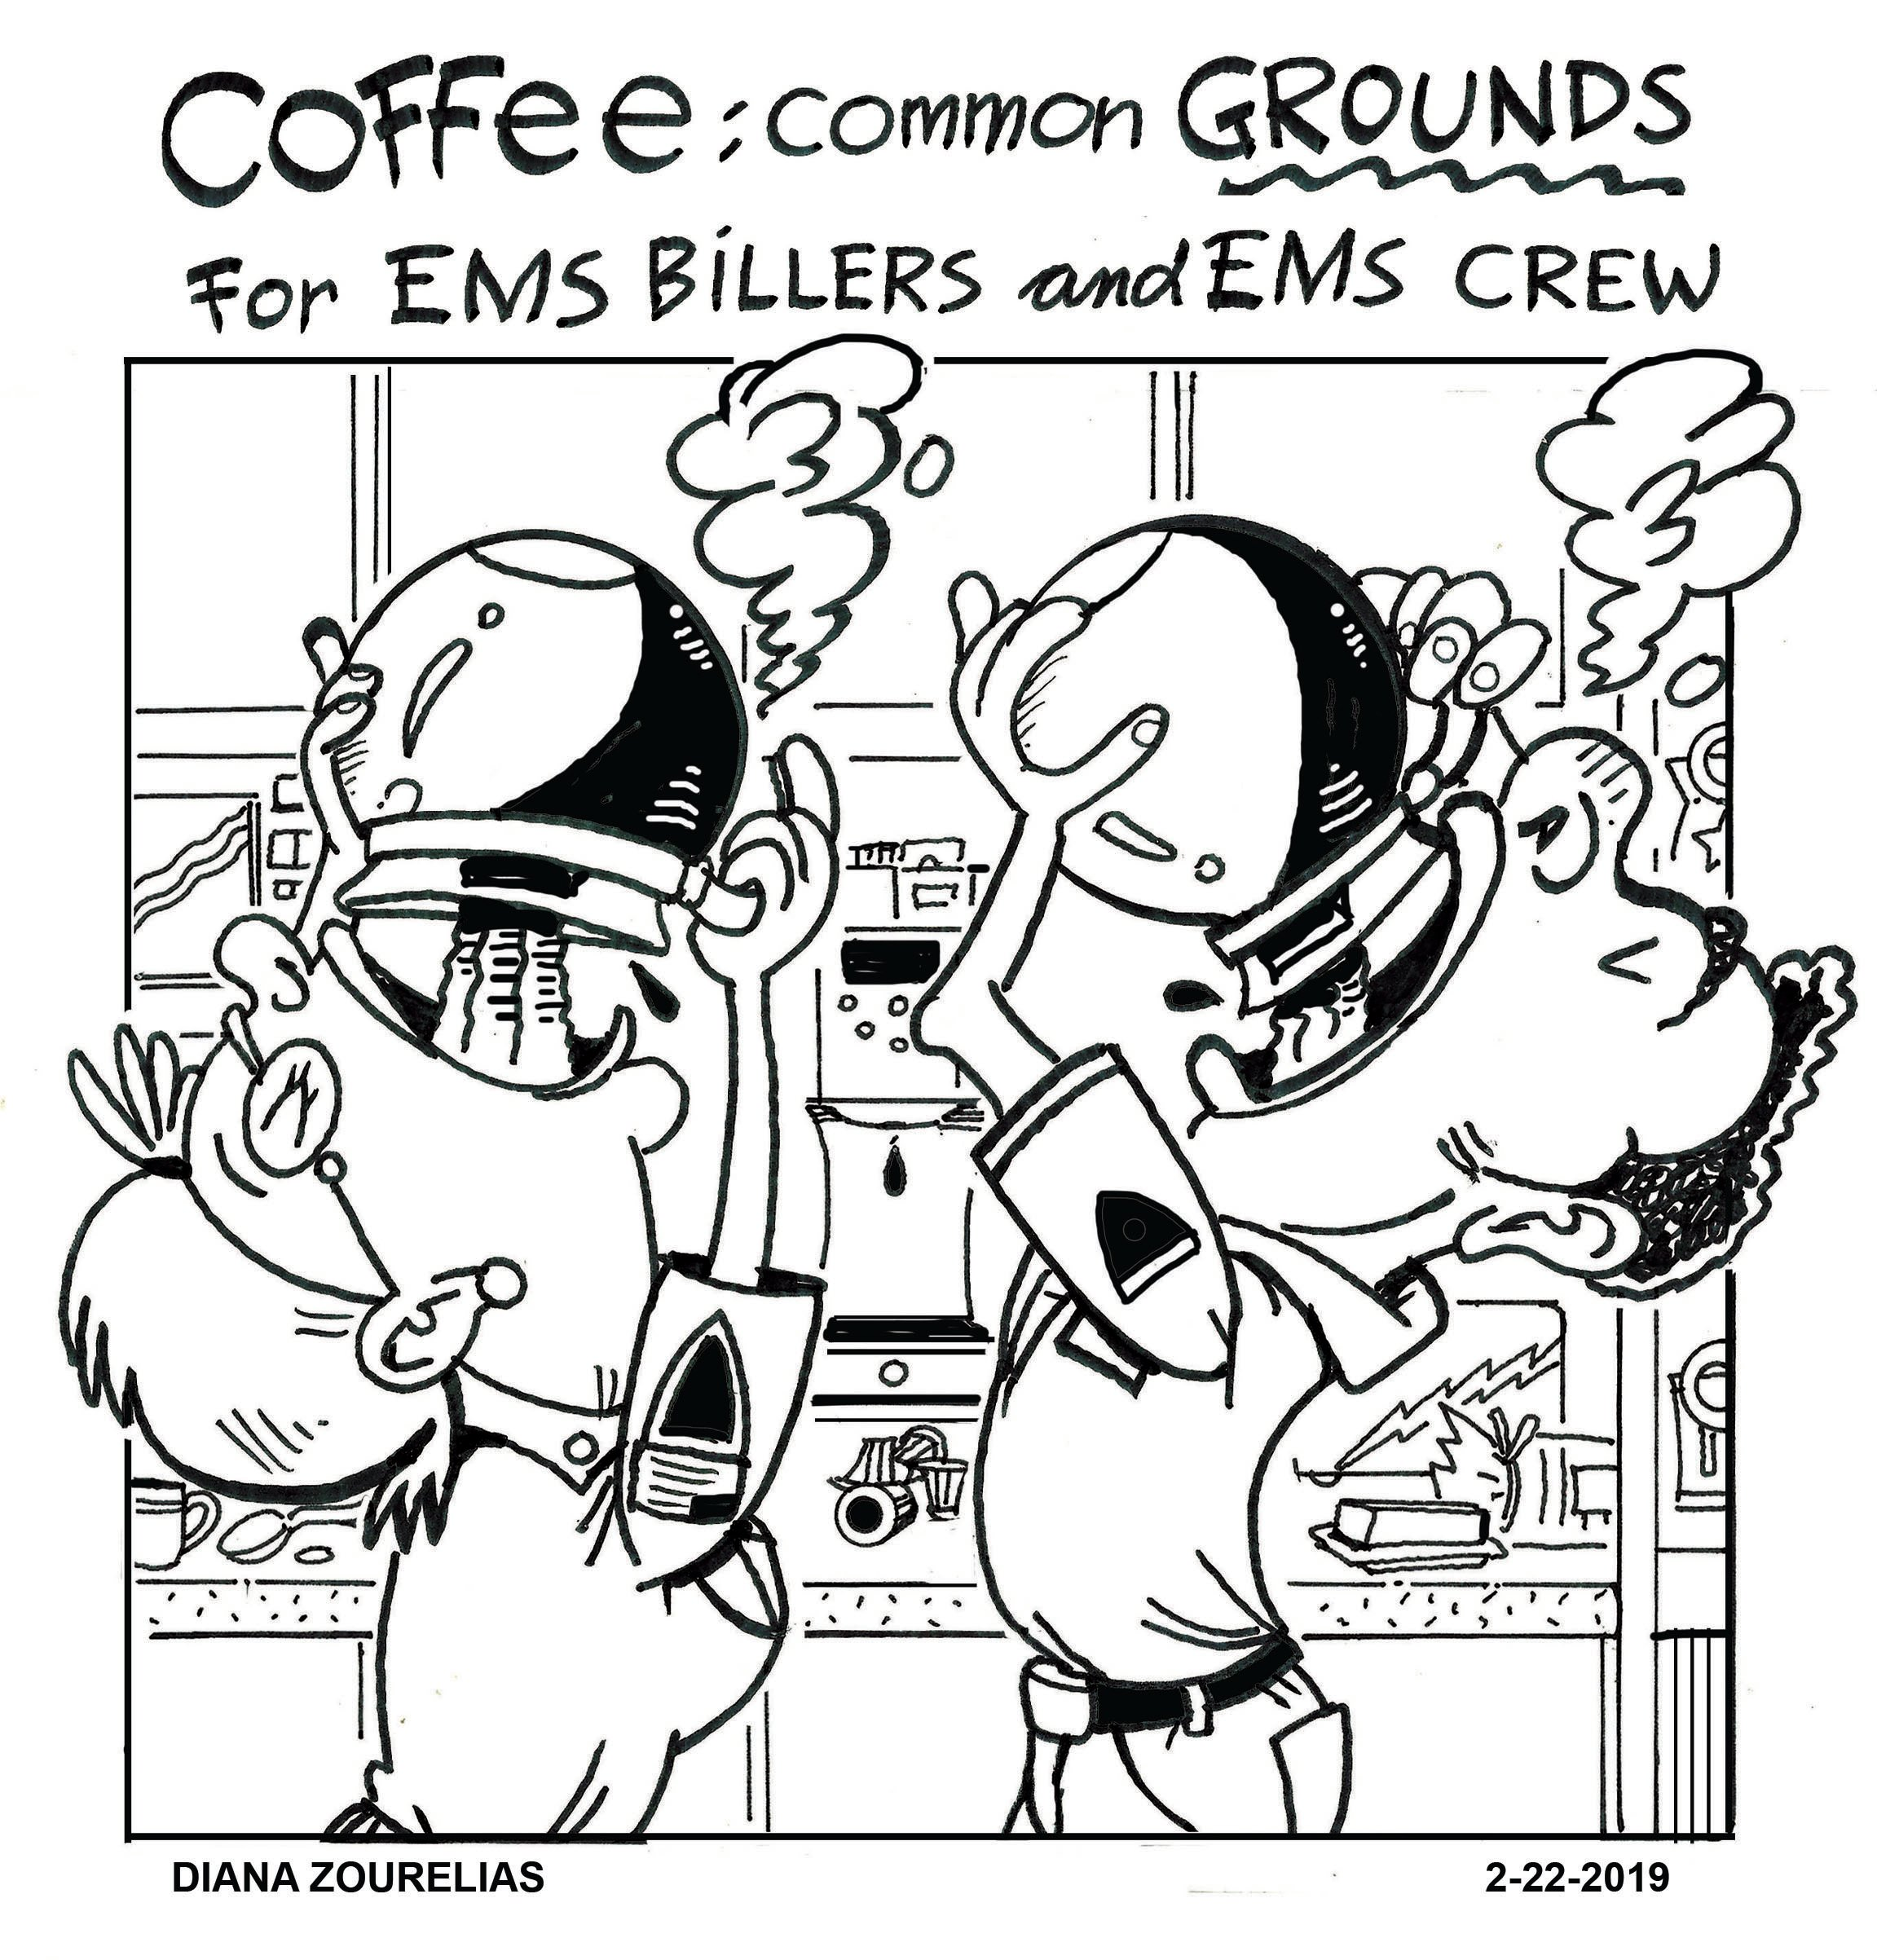 Coffee: Common Grounds for EMS Billers and EMS Crew